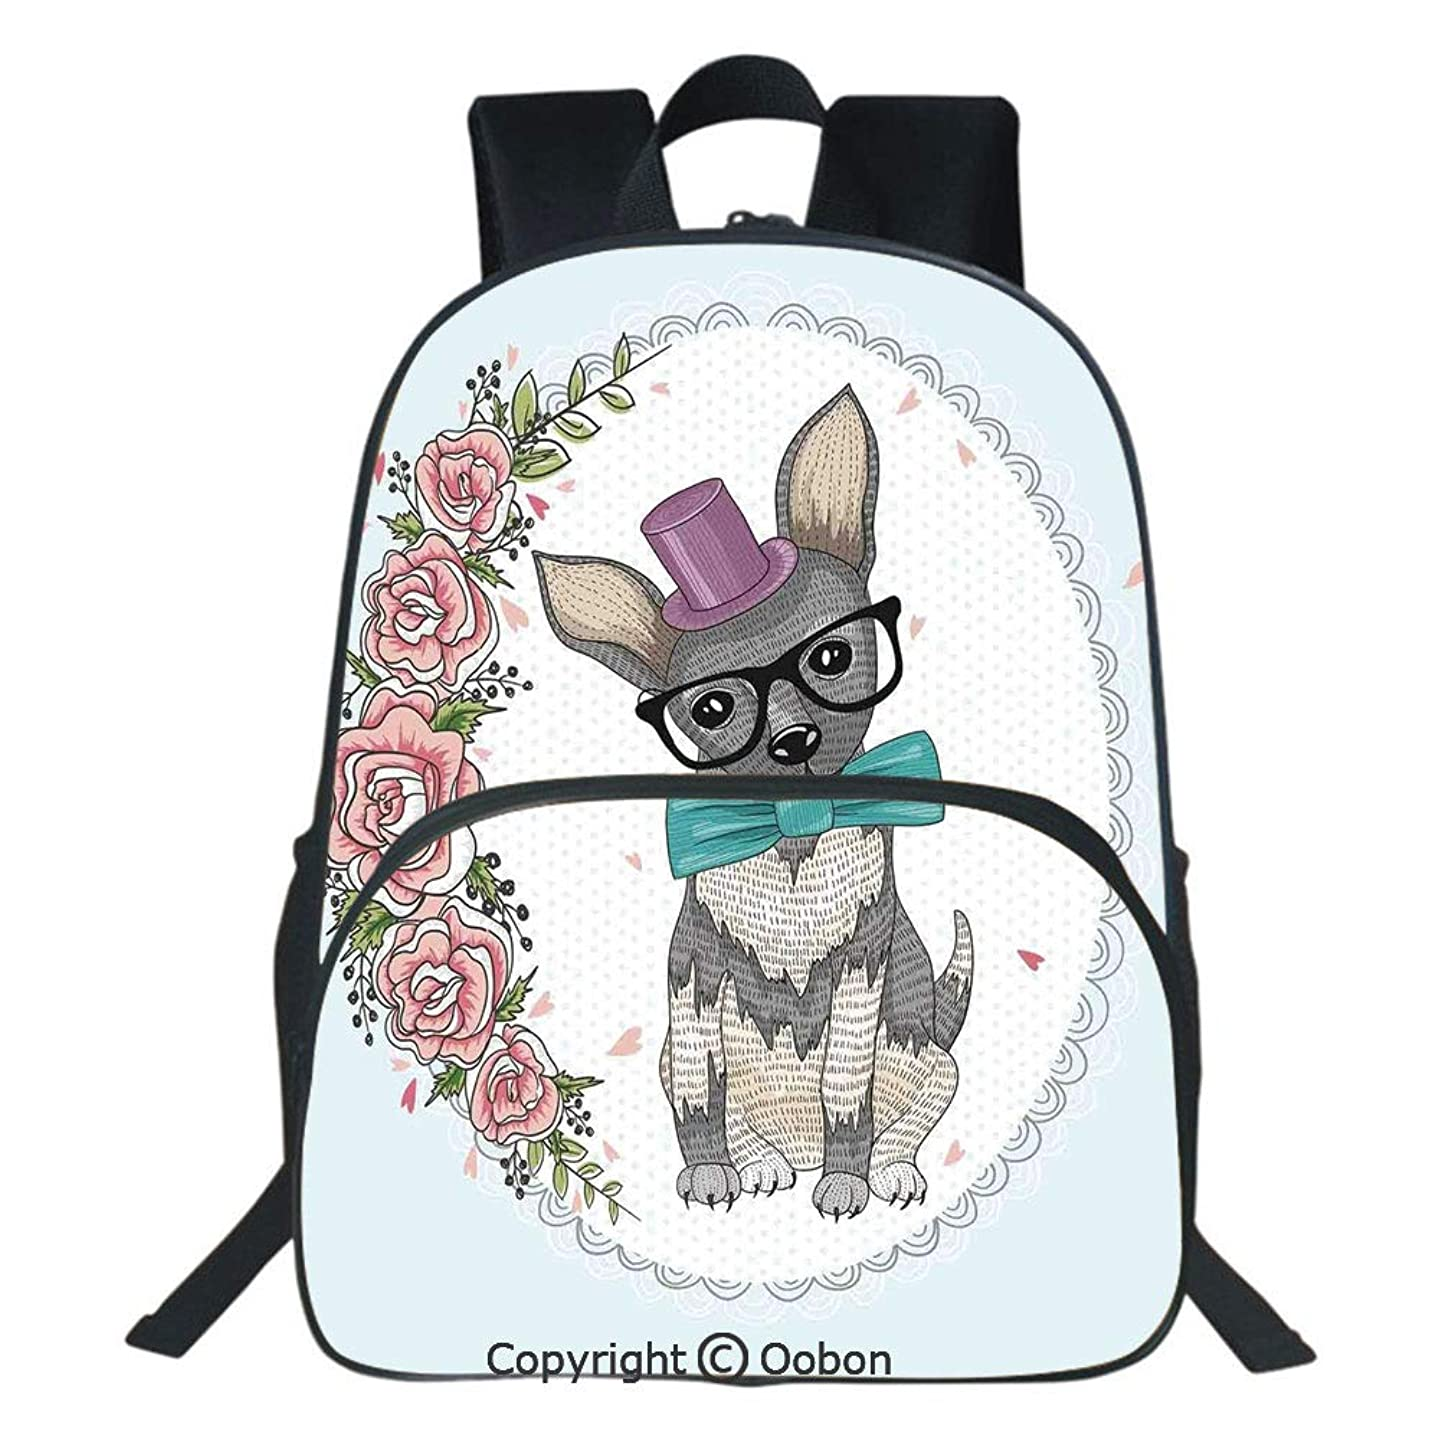 Oobon Kids Toddler School Waterproof 3D Cartoon Backpack, A Dog Puppy Retro Art Design Floral Heart and Flowers Roses Print Decorative, Fits 14 Inch Laptop